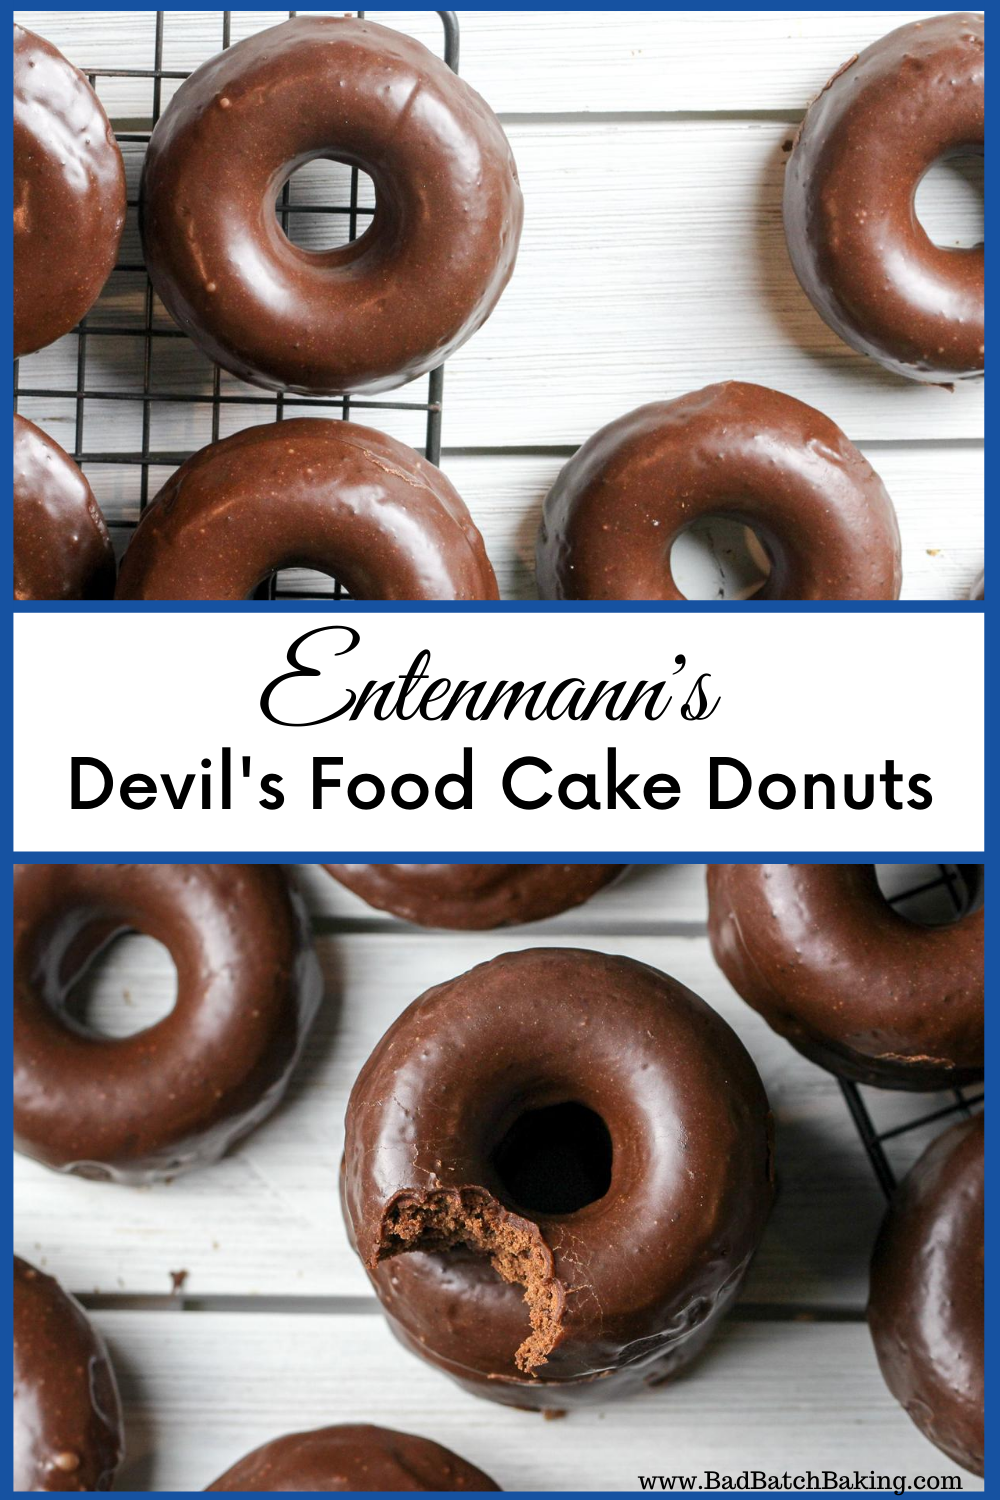 Entenmann's Devil's Food Cake Donuts